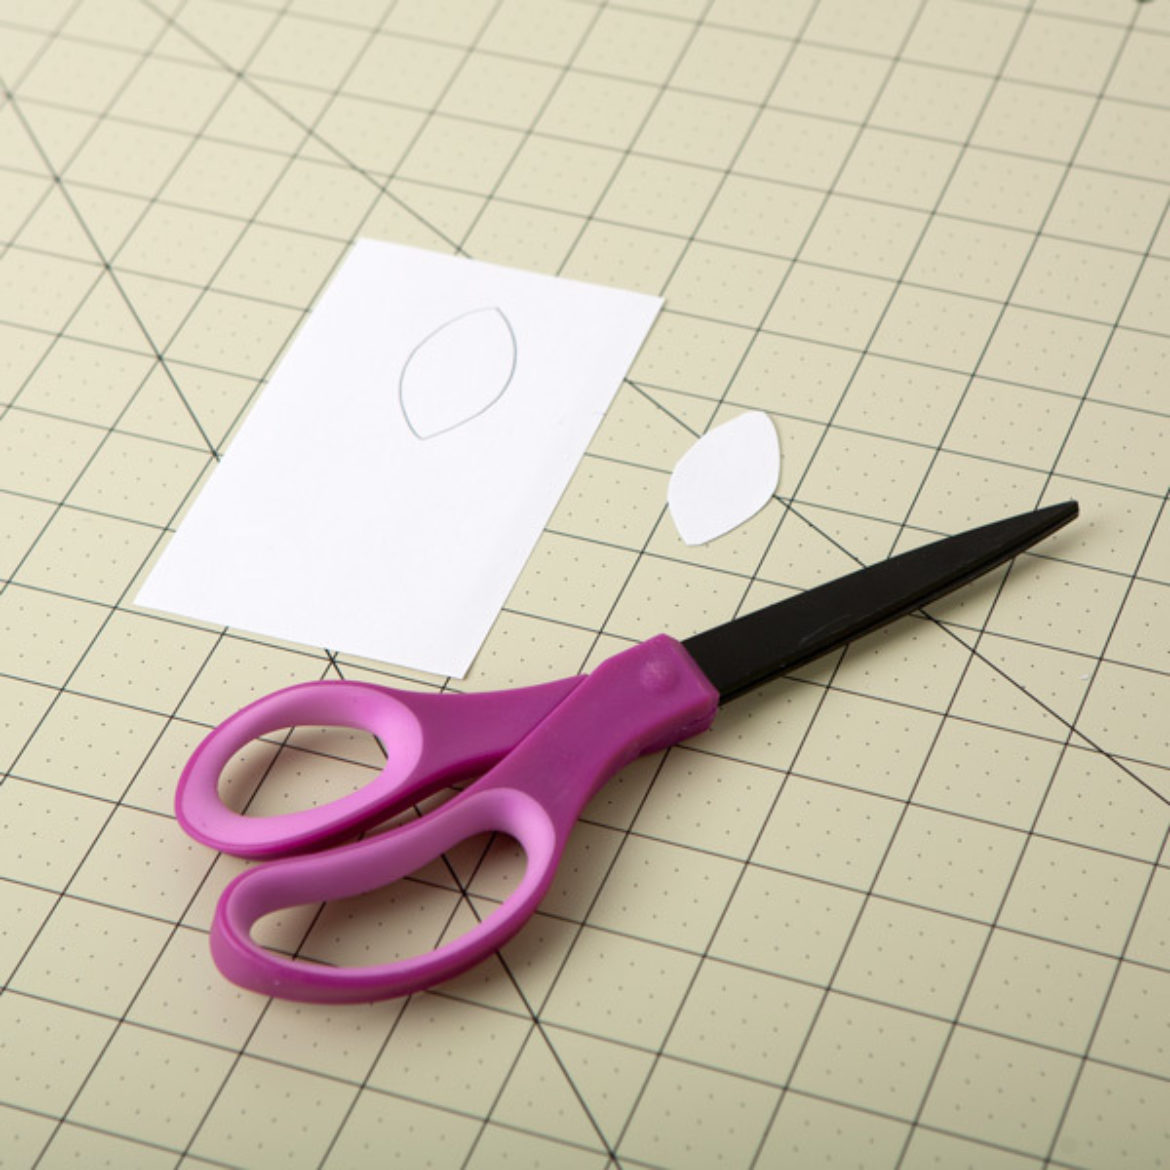 almond shape cut out of a piece of cardstock to be used as a template